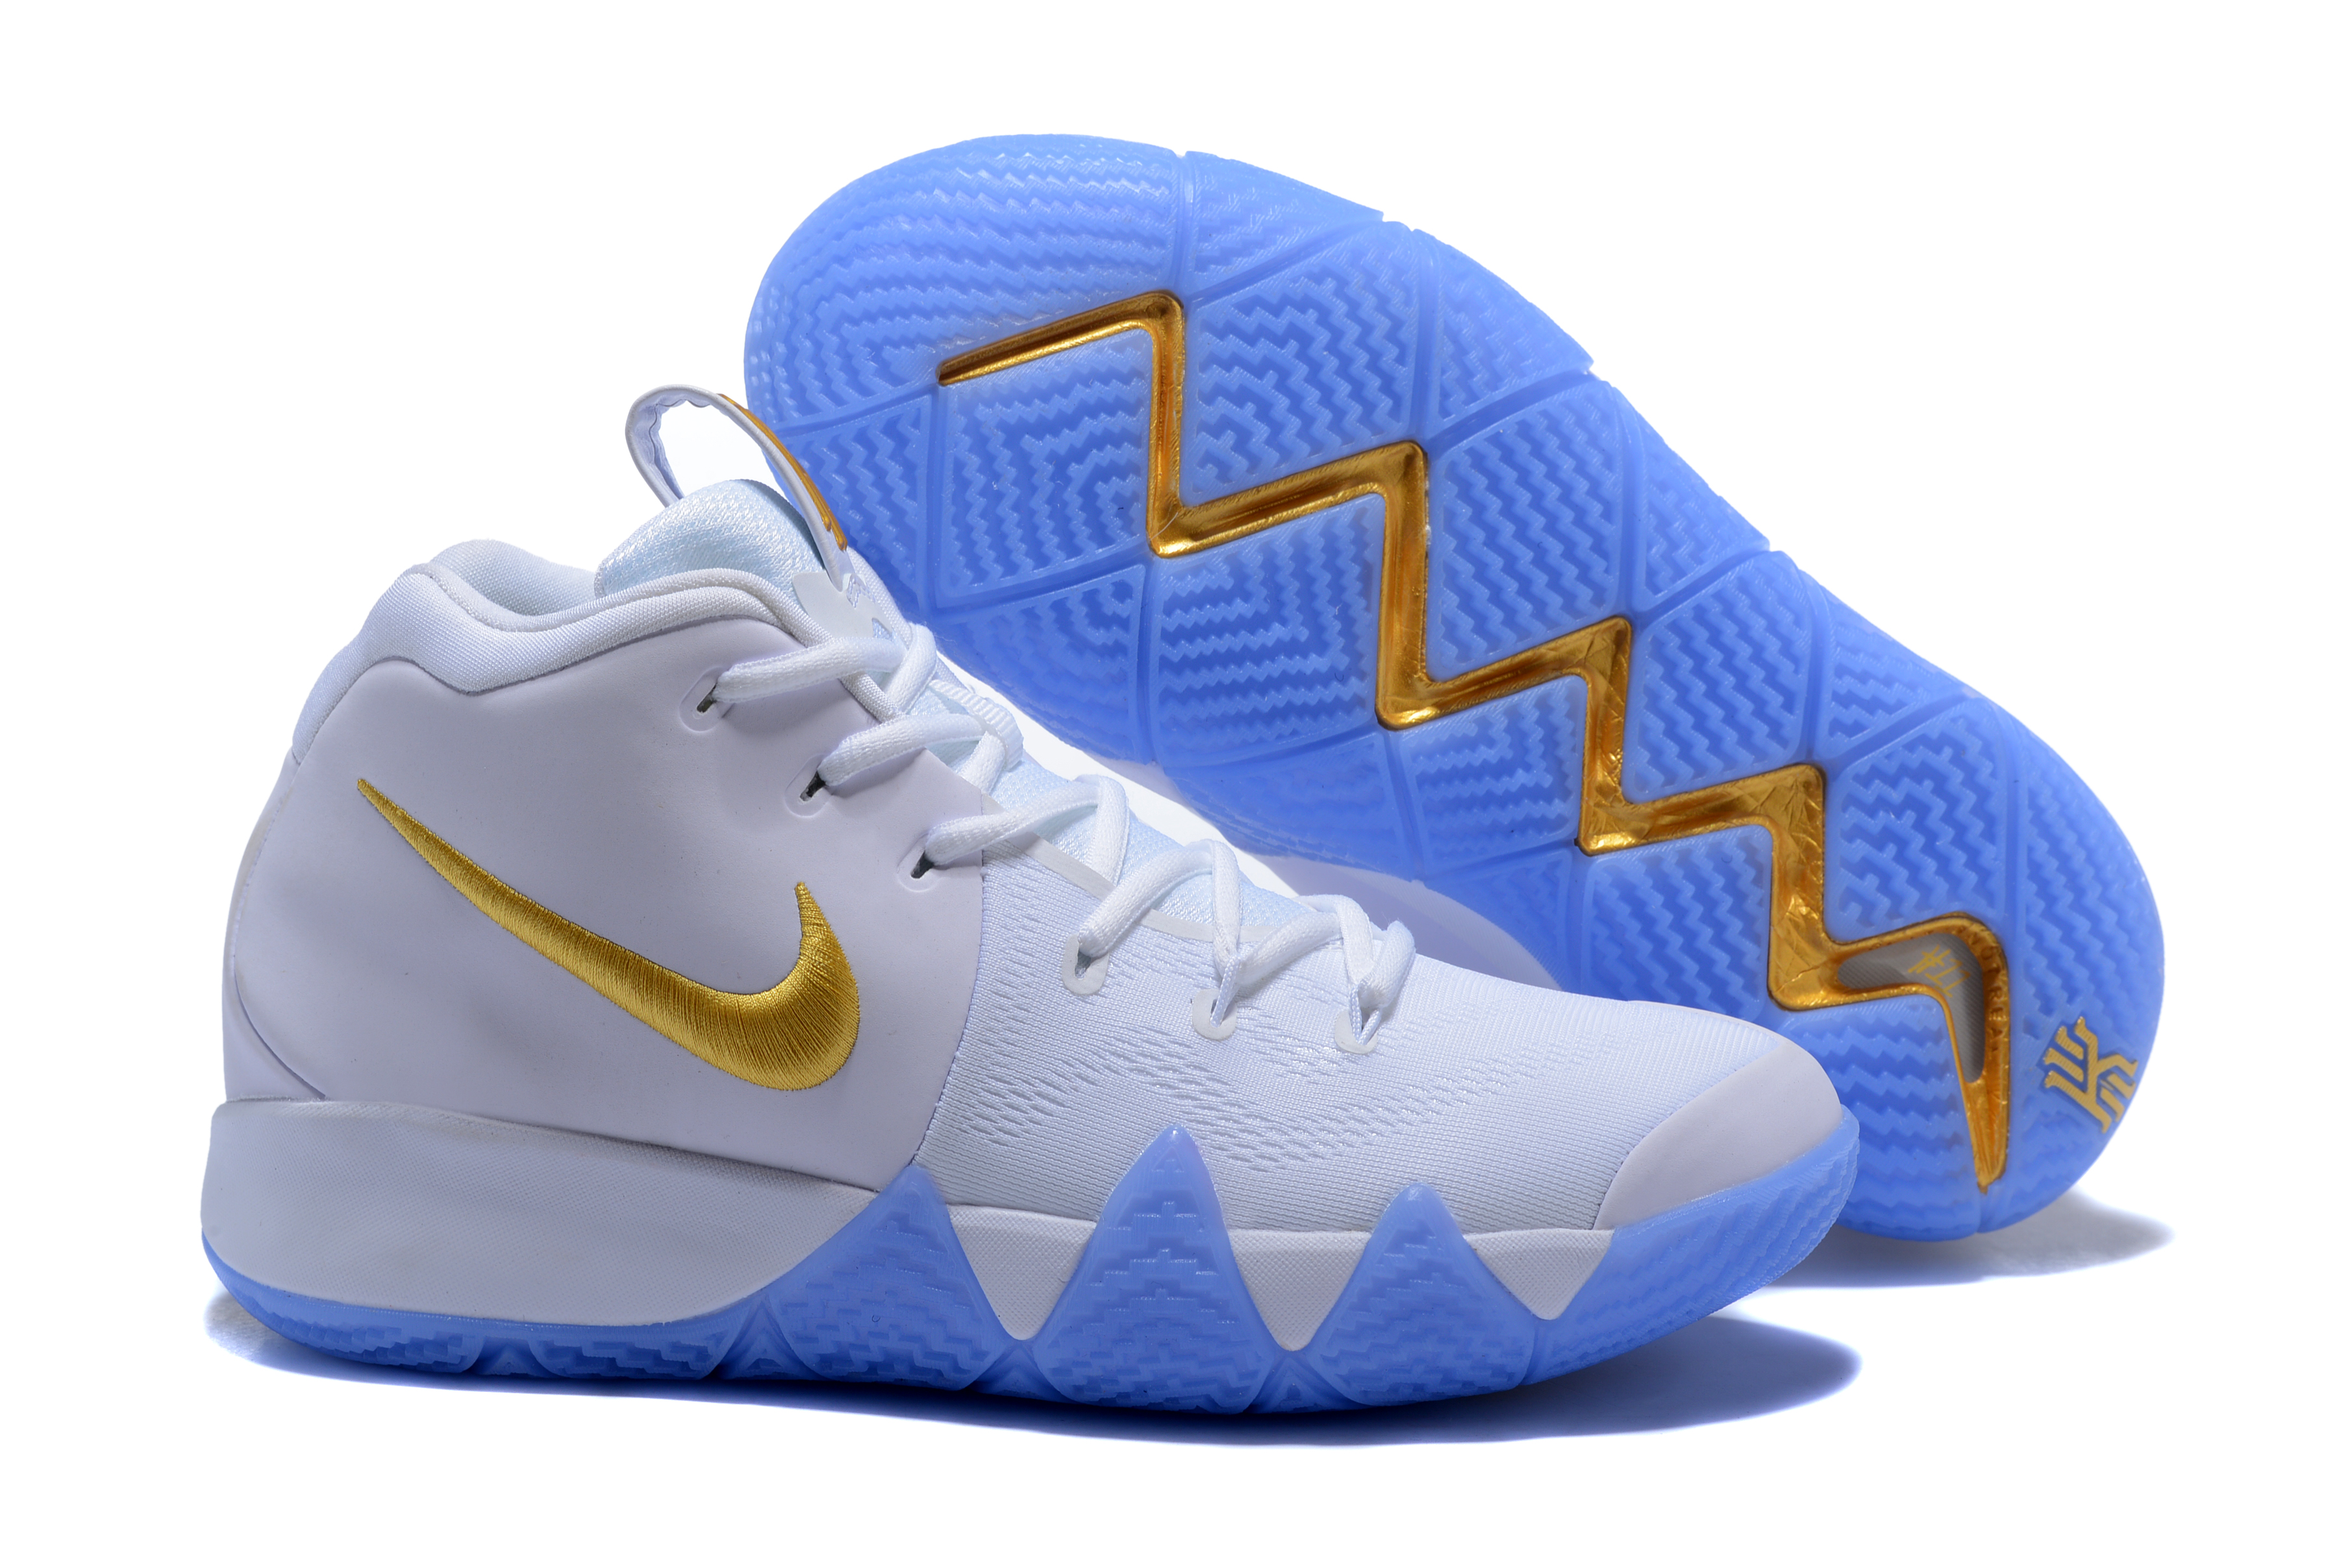 New Nike Kyrie 4 White Gloden Shoes